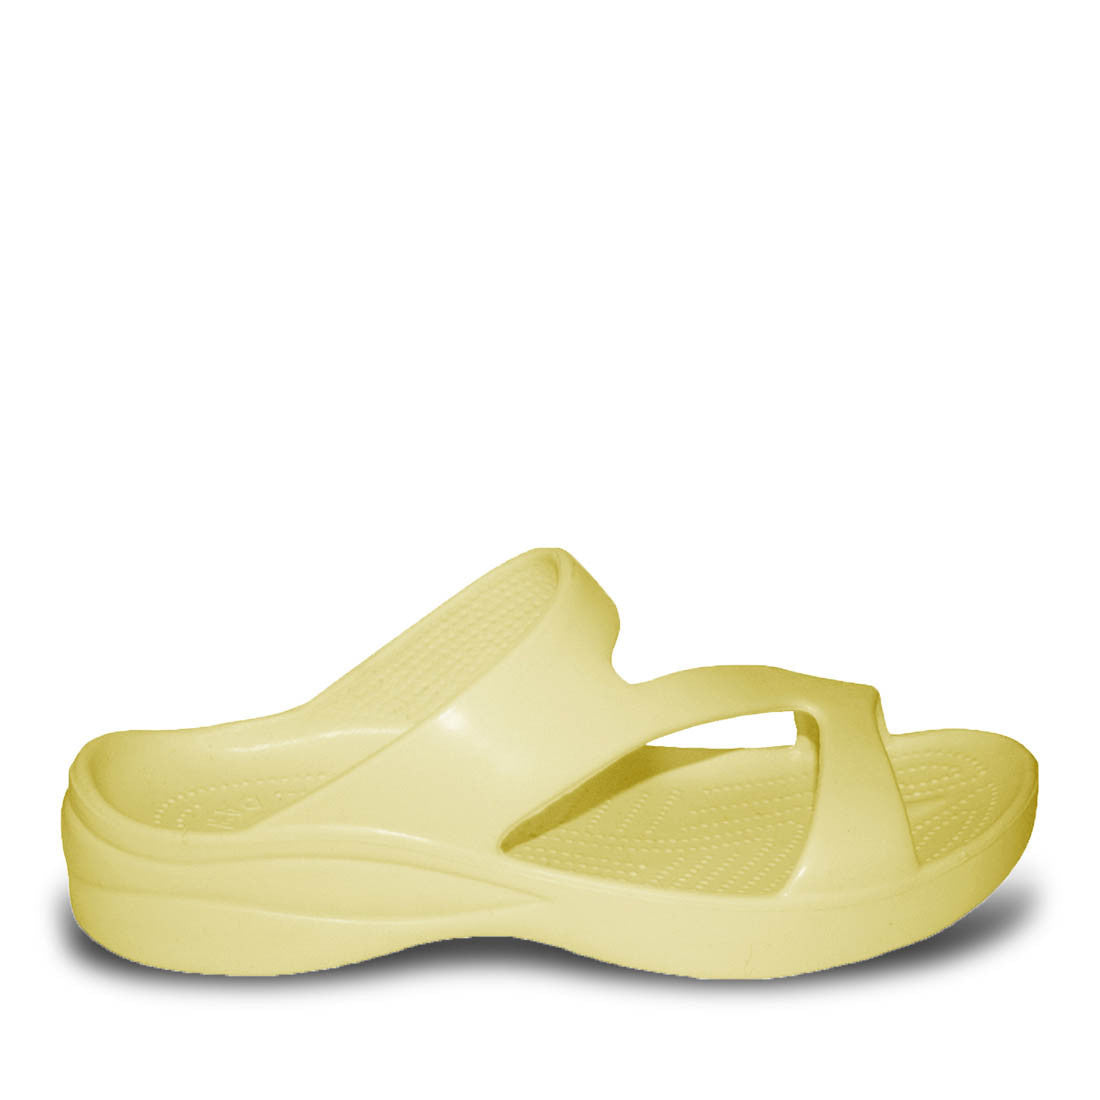 Image of Women's Z Sandals - Yellow